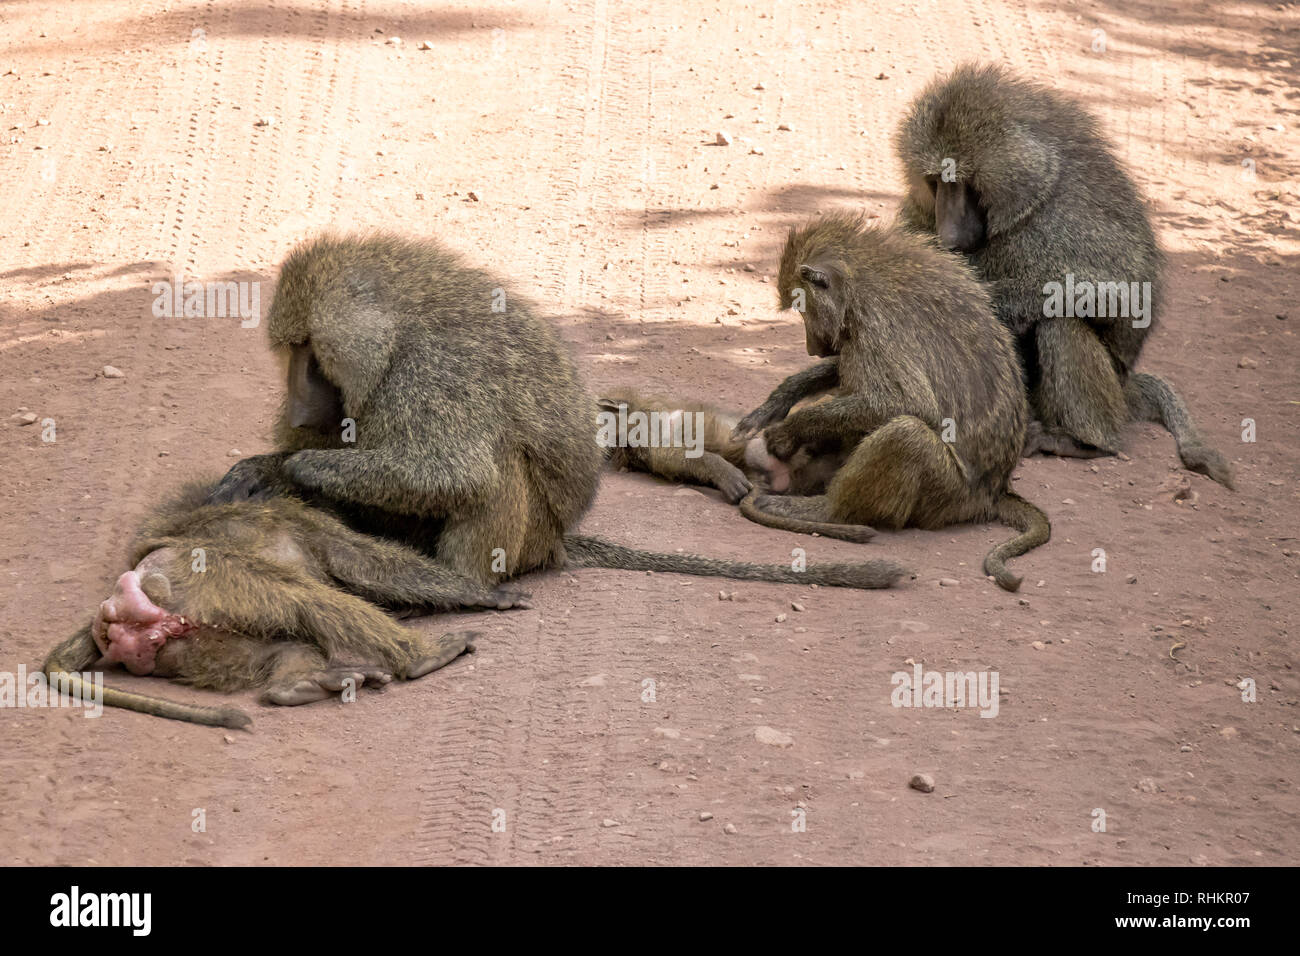 Family of baboons cleaning each other - Stock Image